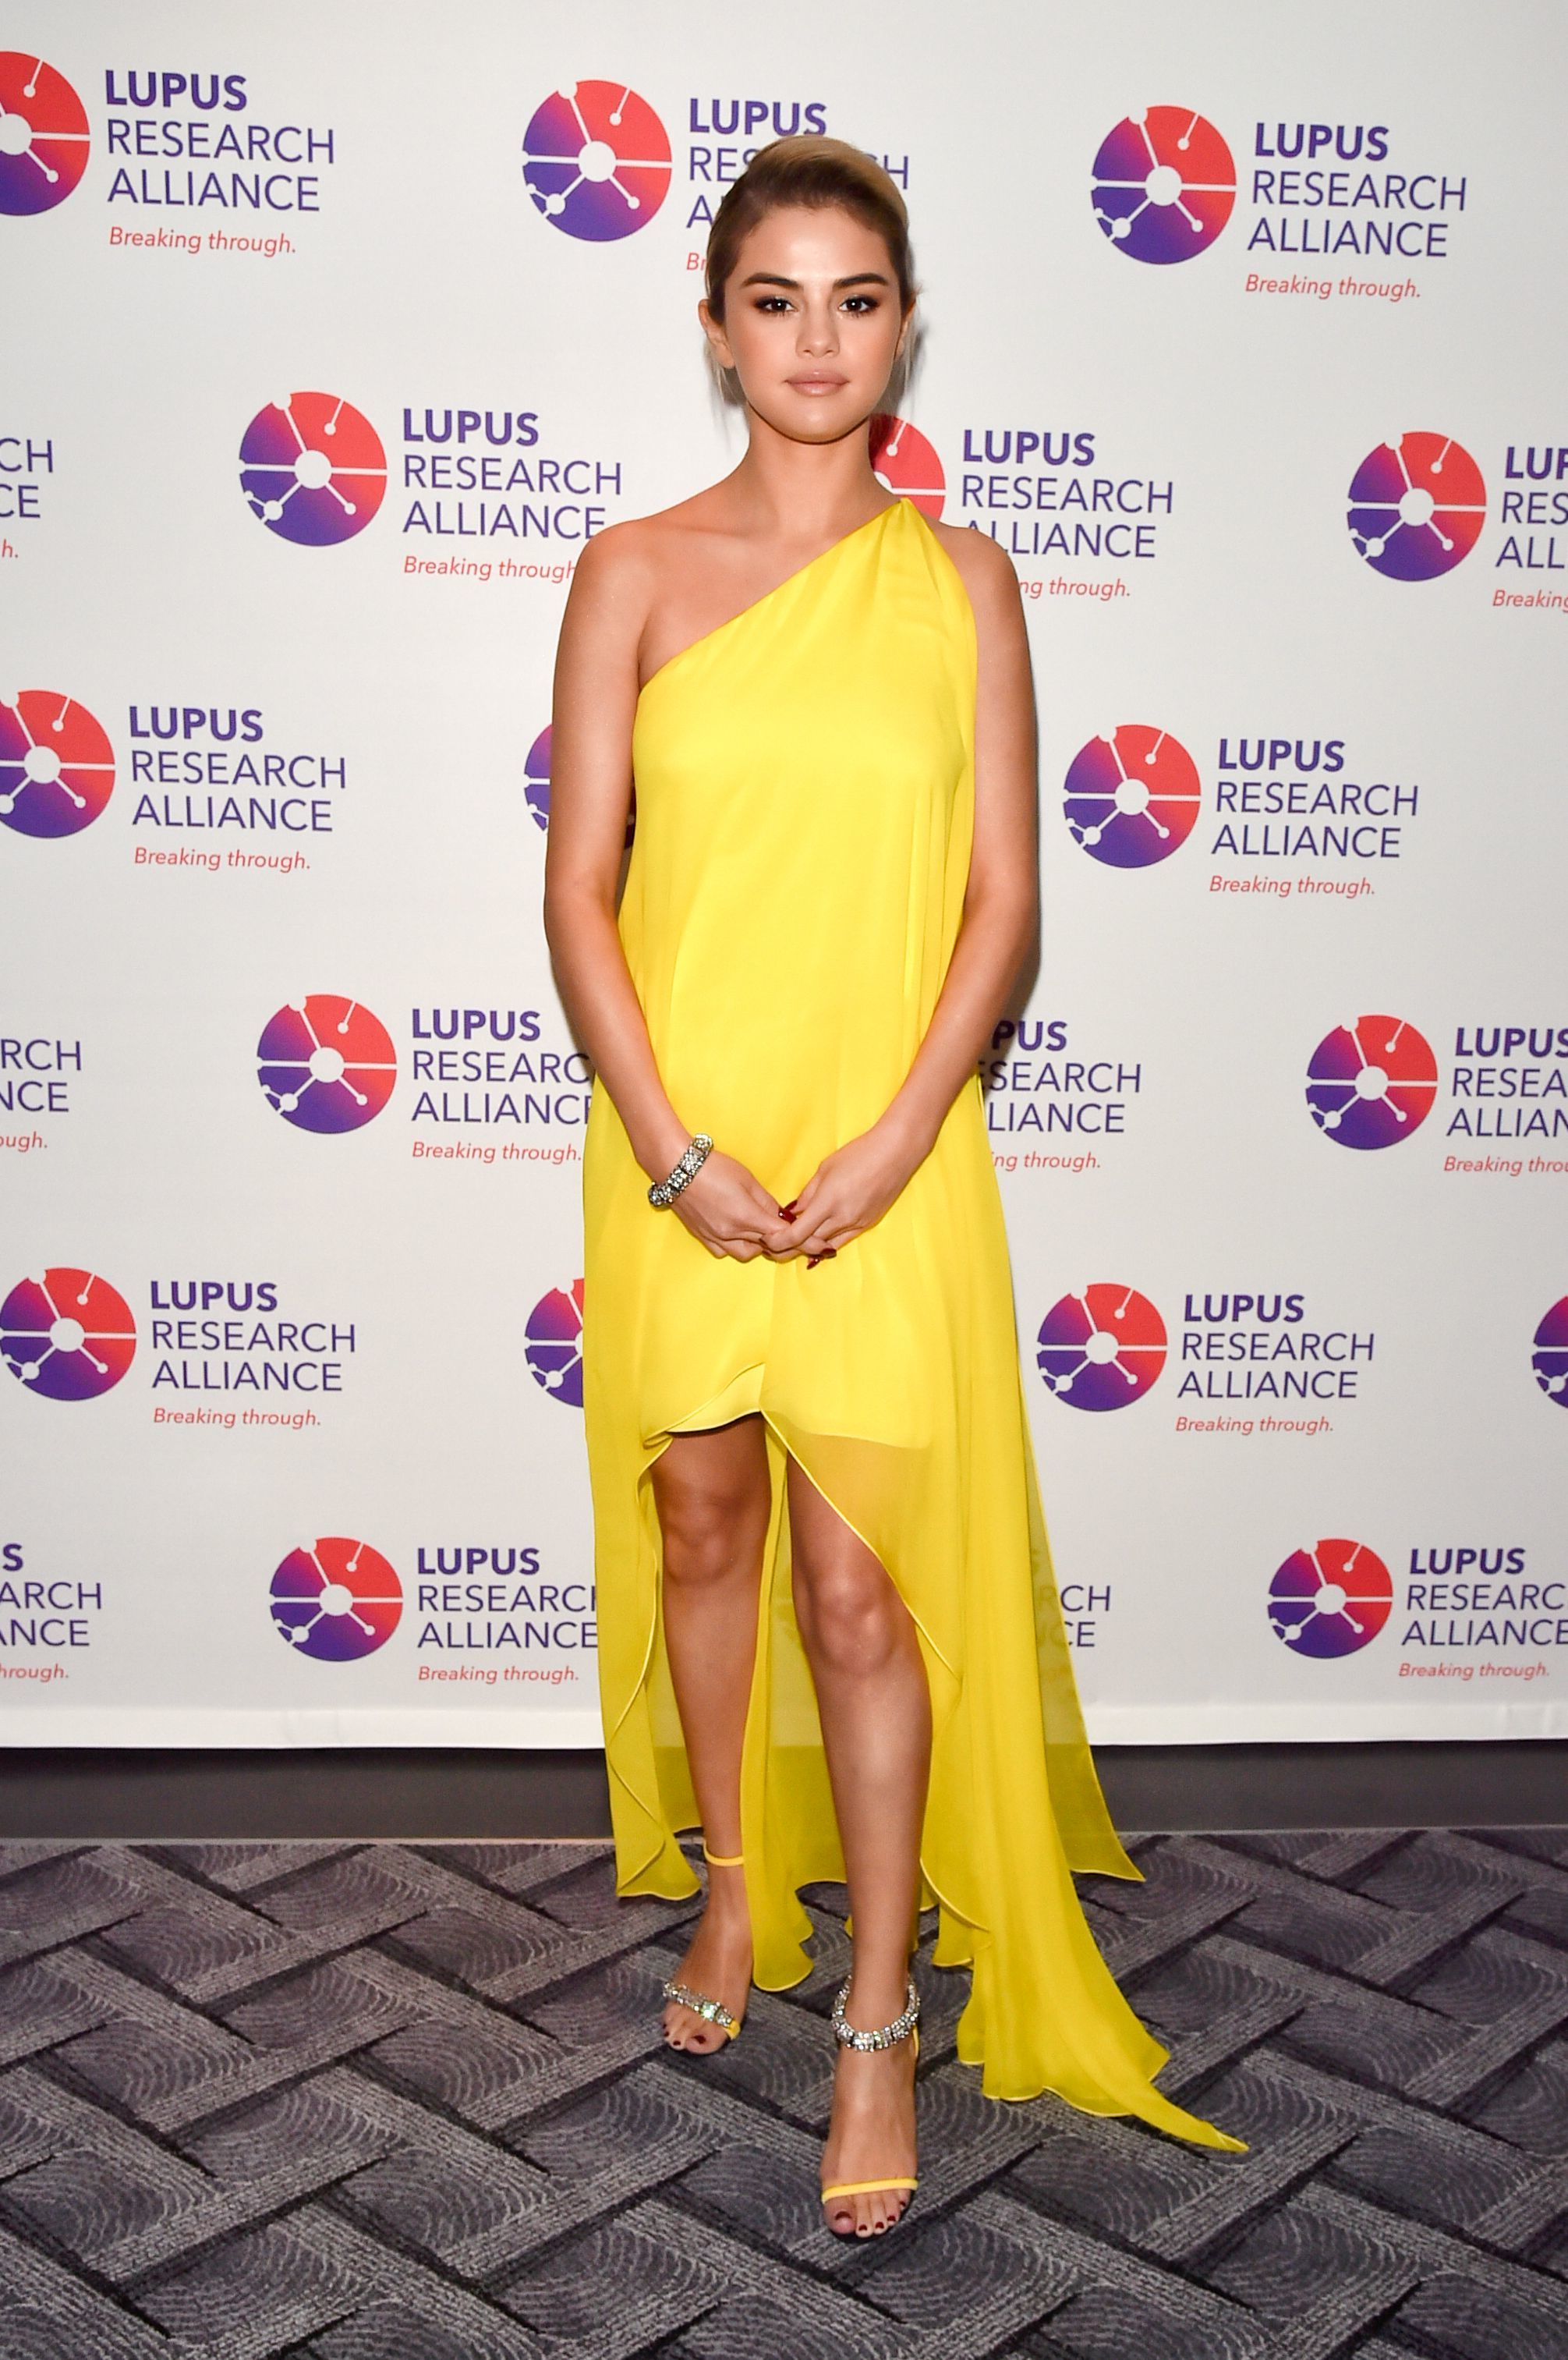 Selena Gomez attends the Lupus Research Alliance Breaking Through Lupus Gala in New York City on Nov. 20, 2017.